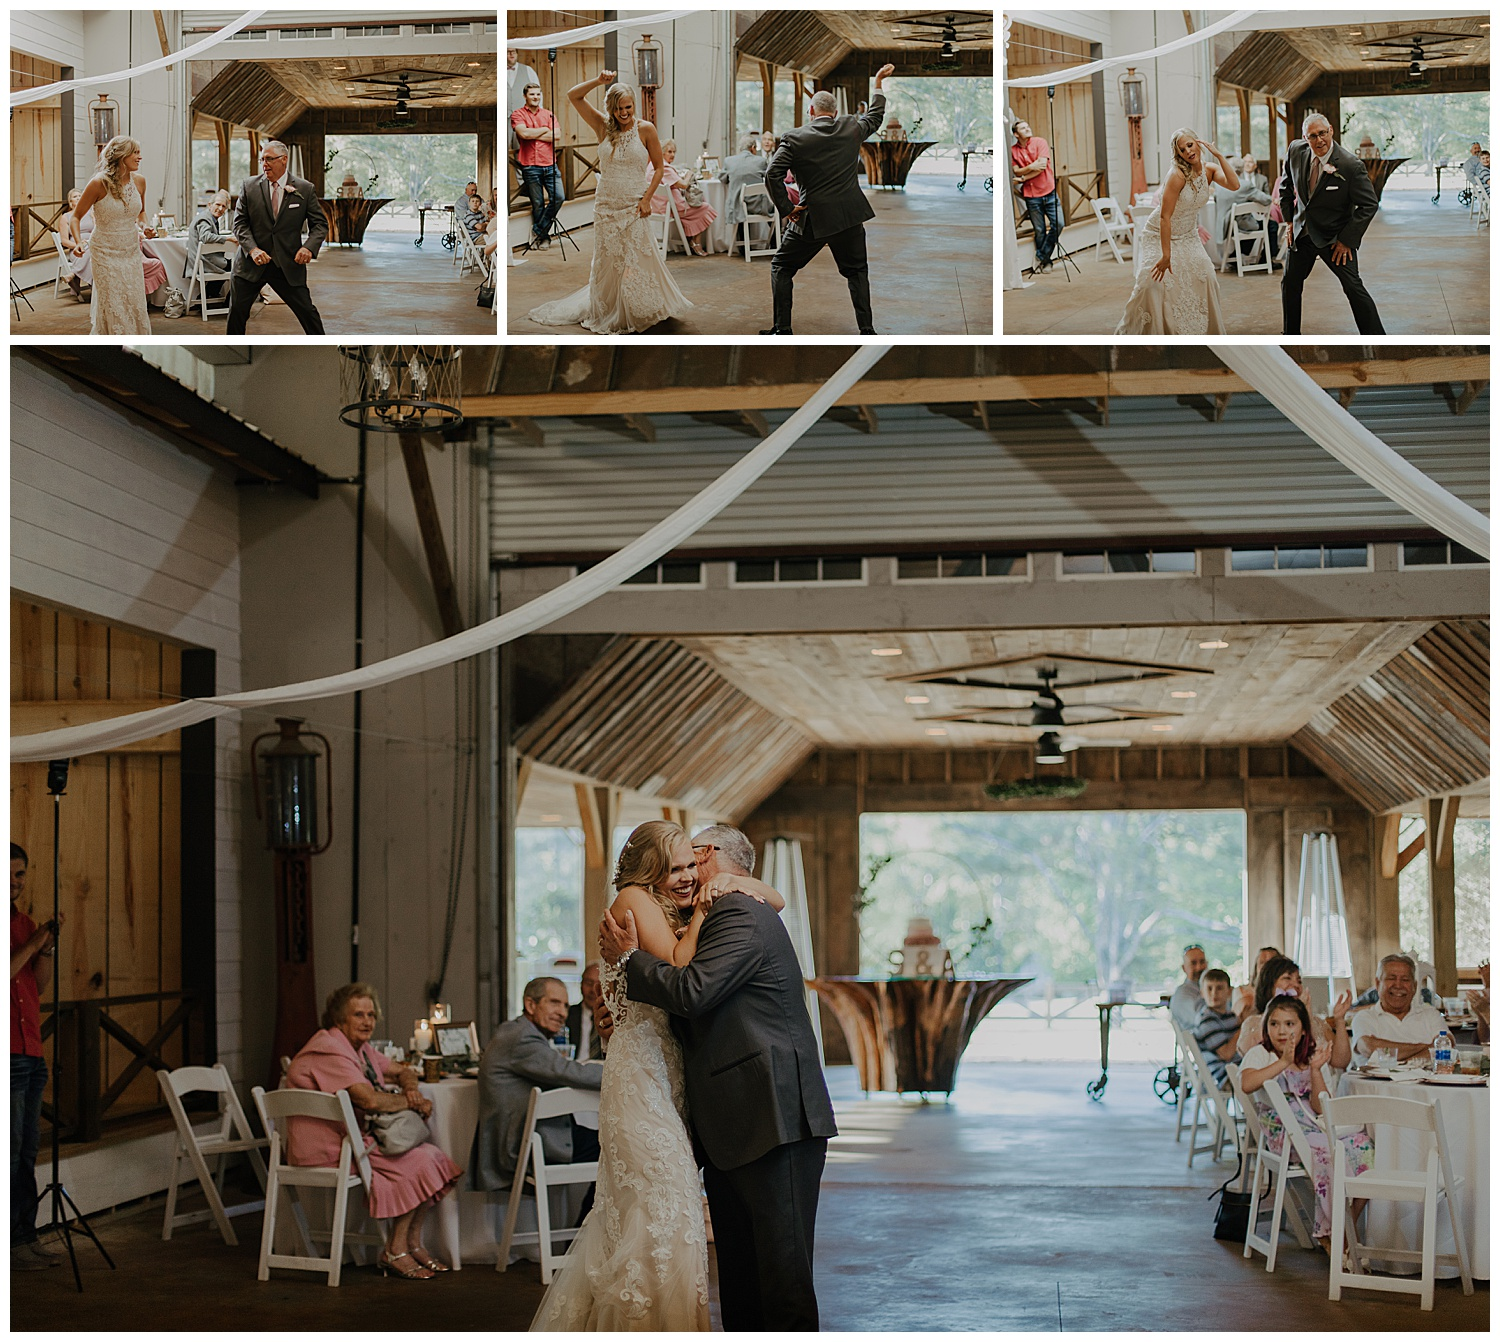 Don & Ashley had the best dance! It started out with a slow song and changed into an upbeat mashup of songs. Ashley and her momma choreographed and taught Don just days before the wedding. There wasn't a single person not laughing in that room!